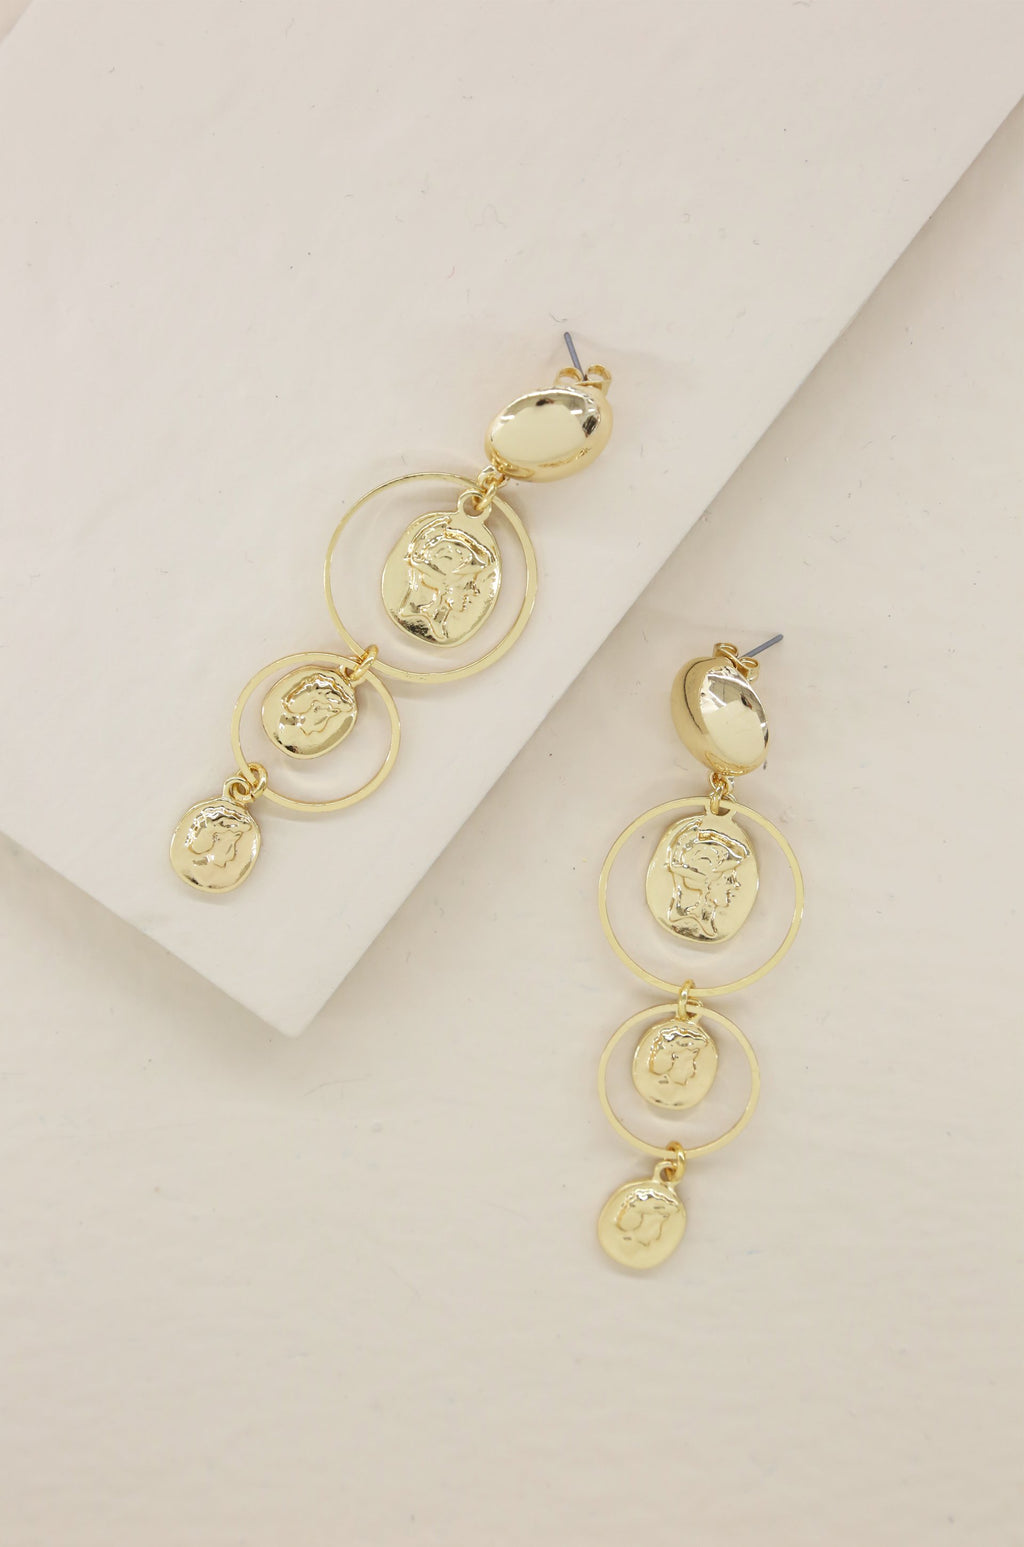 'Coins in Orbit' 18kt Gold Plated Dangle Earrings